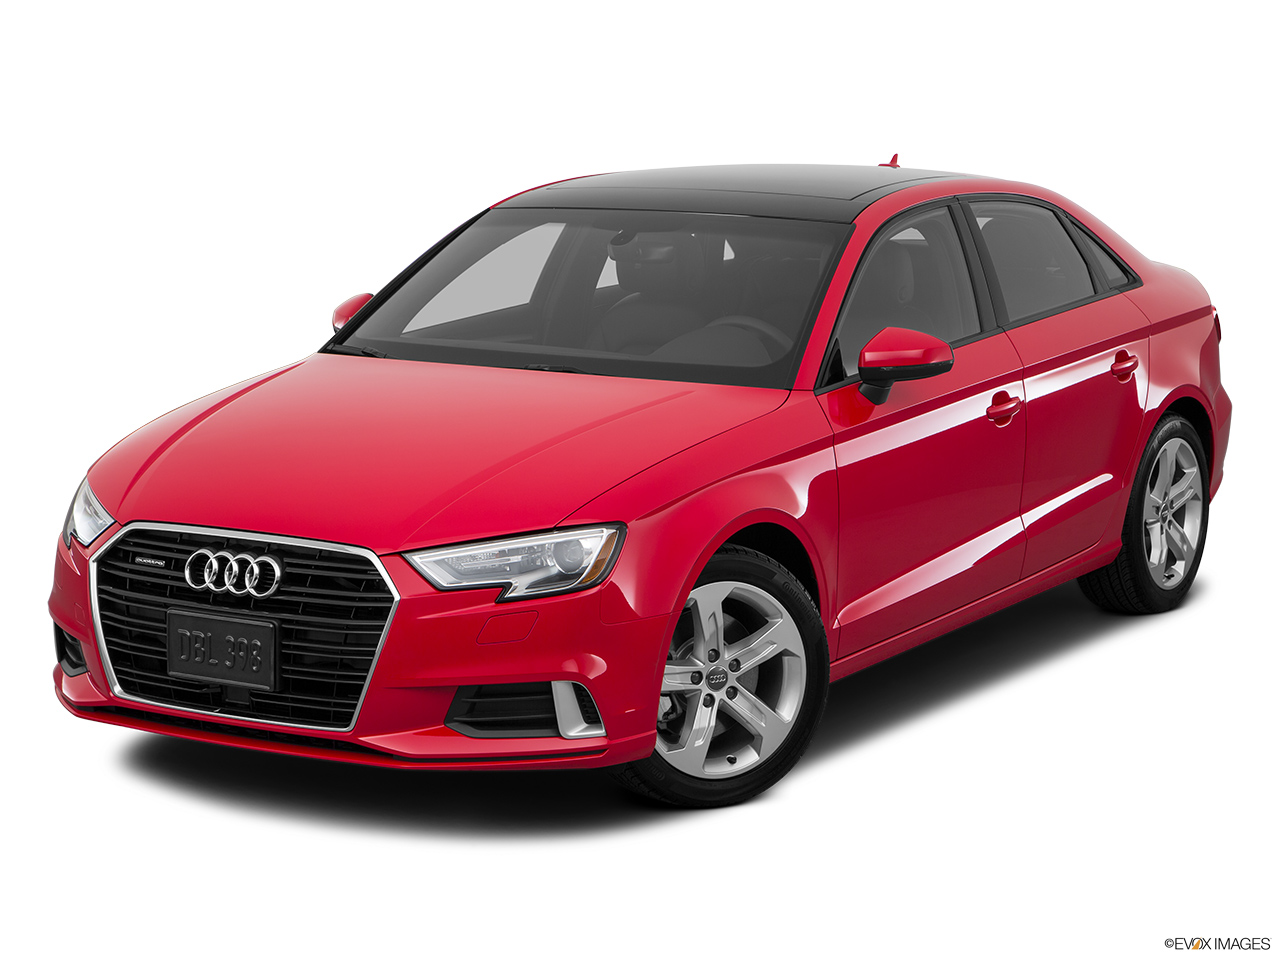 2018 audi a3 sedan prices in uae gulf specs reviews for dubai abu dhabi and sharjah yallamotor. Black Bedroom Furniture Sets. Home Design Ideas